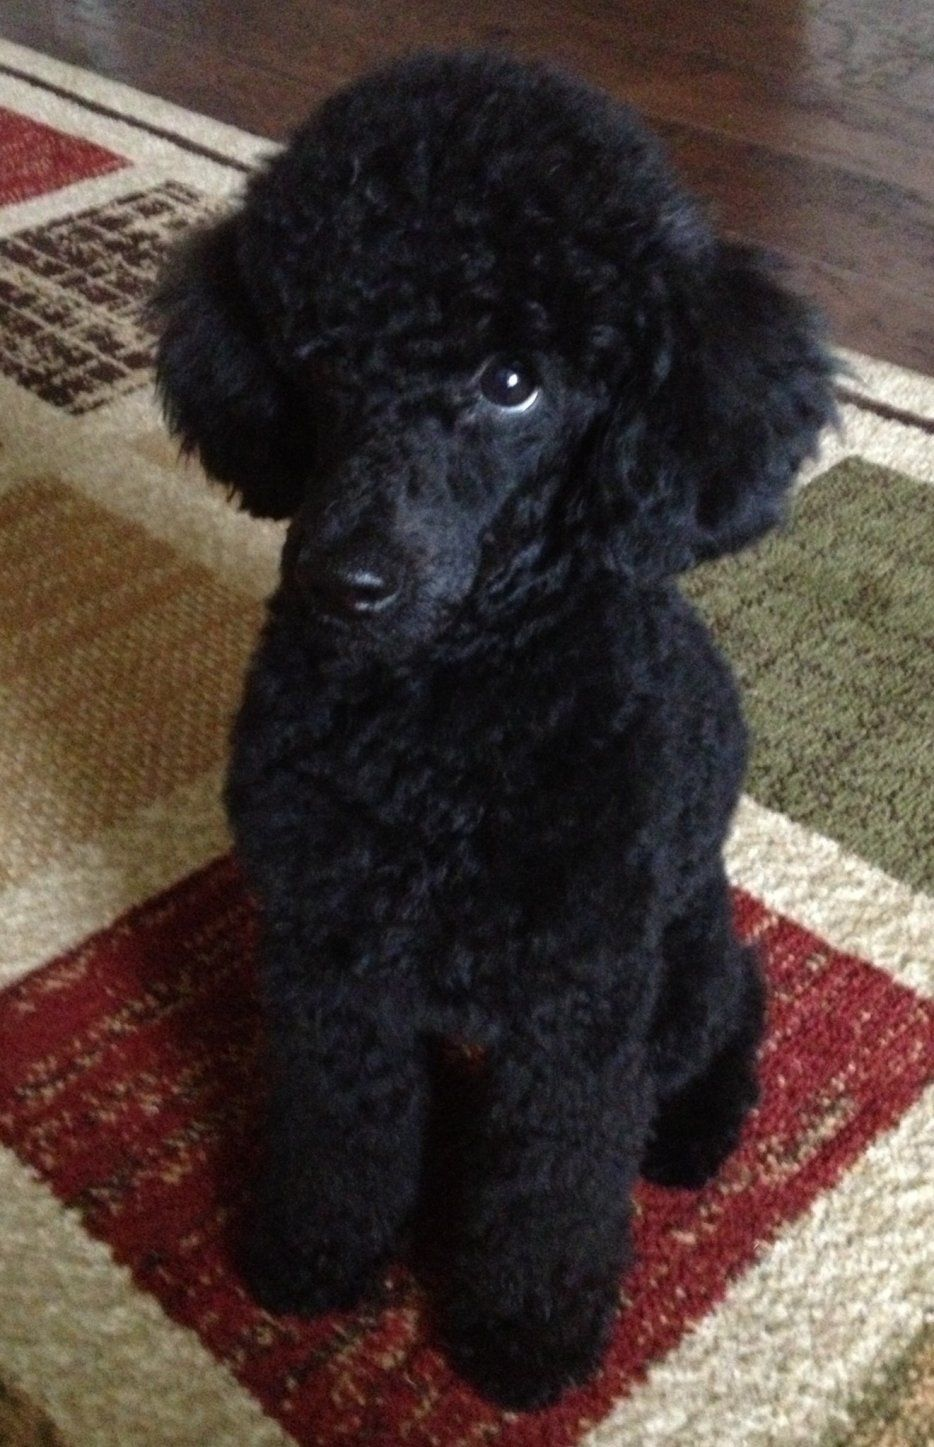 Platinum tea cup poodles for sale dog breeds picture - Images Of Silver Or Platinum Toy Poodles Google Search